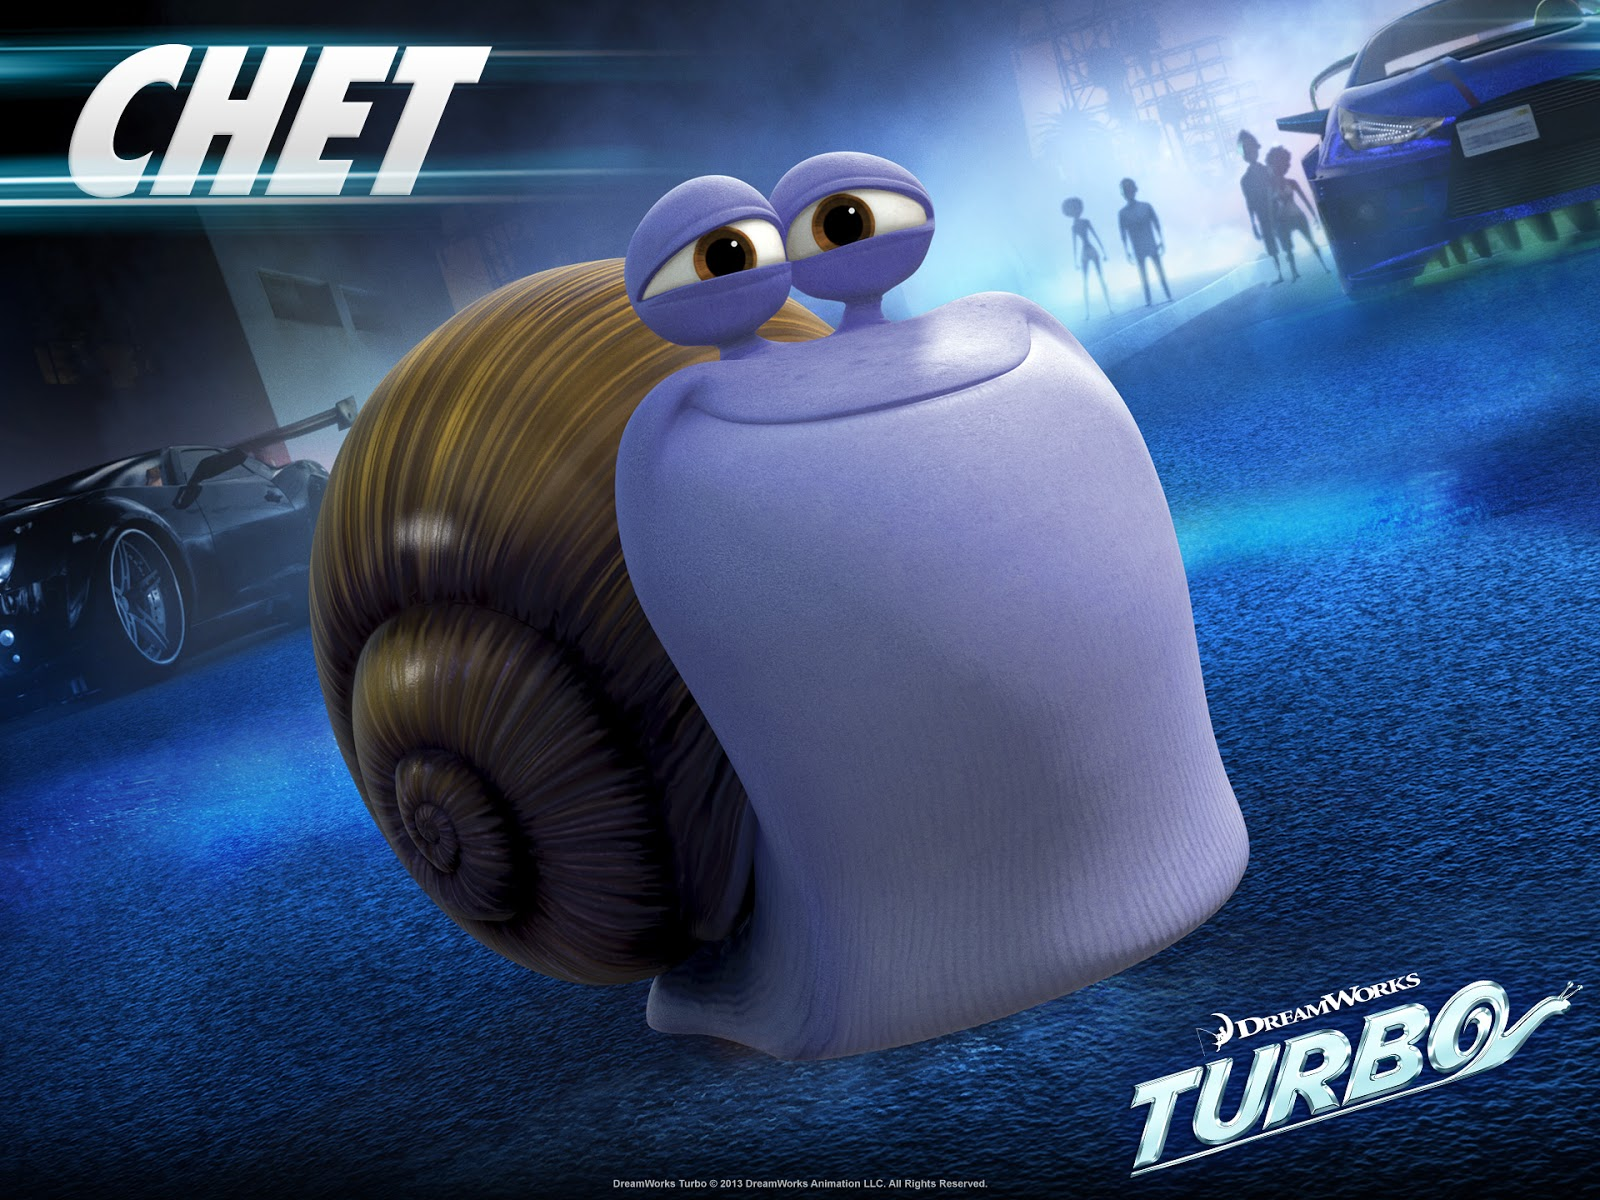 image - turbo-movie-character-chet-hd-wallpaper vvallpaper